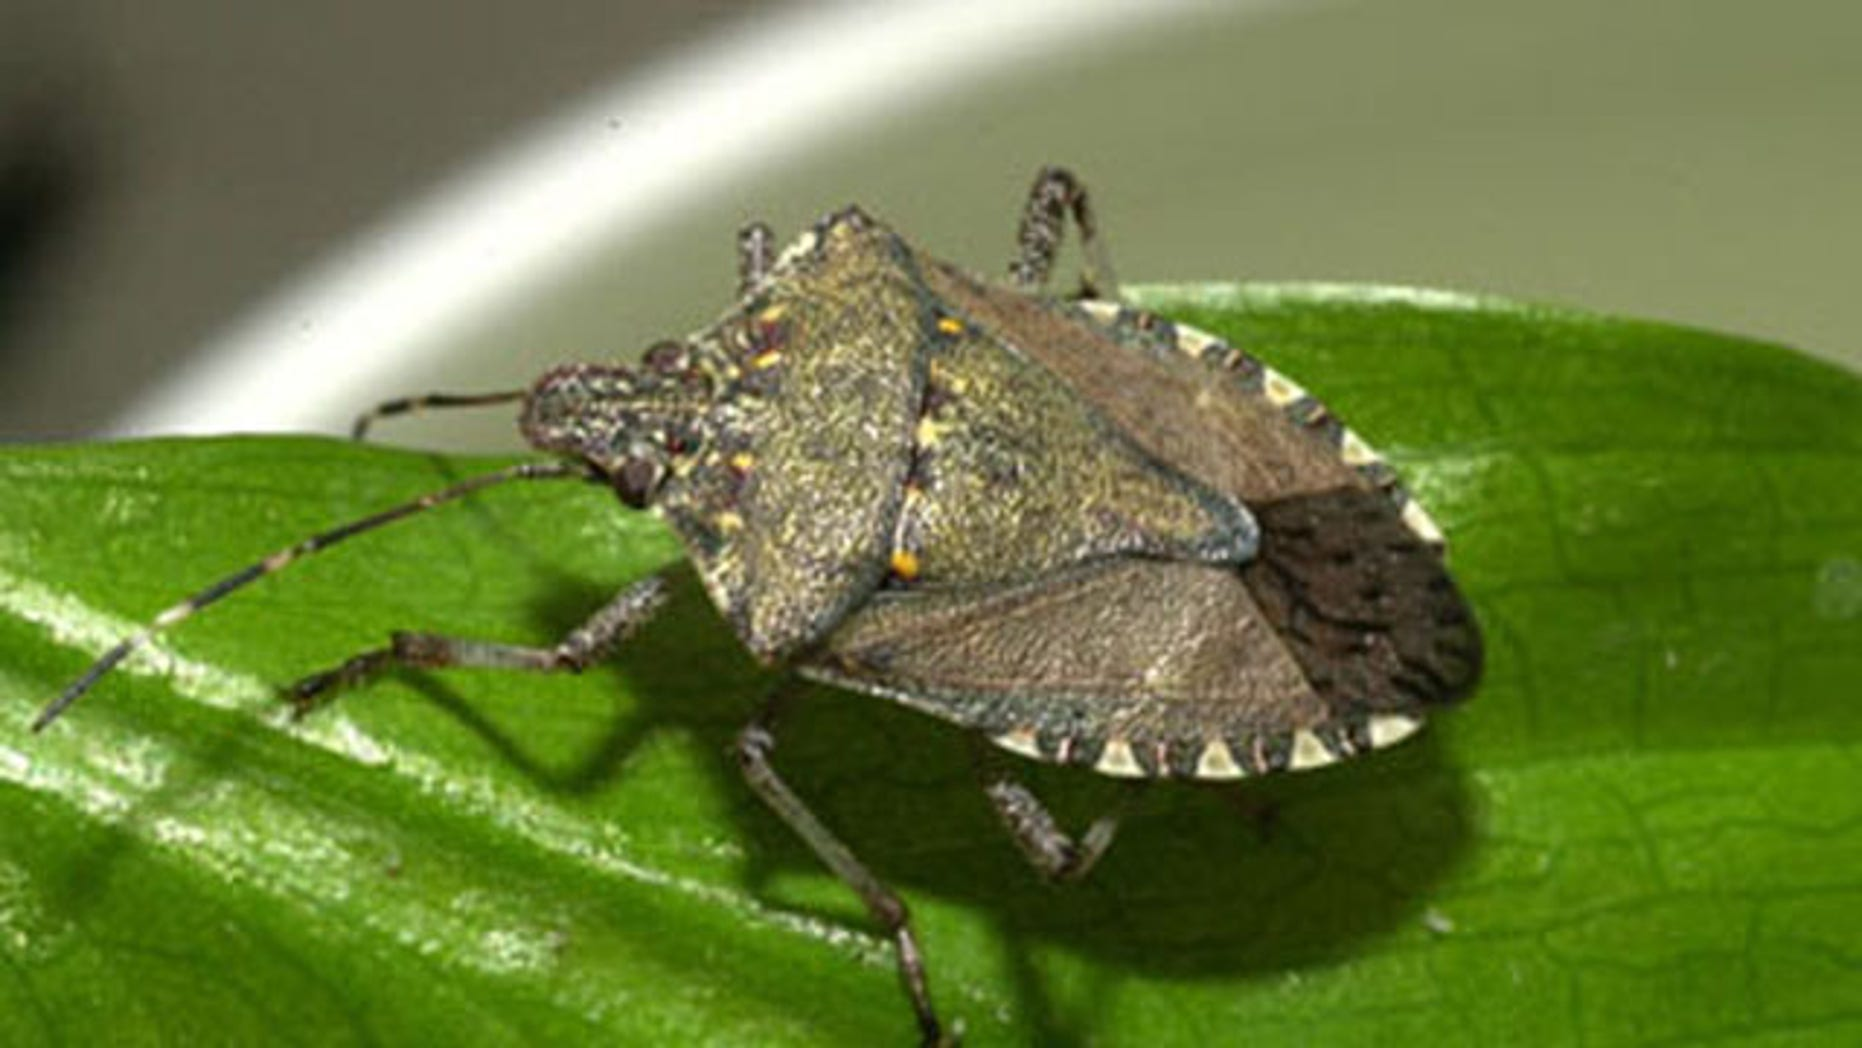 The brown marmorated stink bug(Halyomorpha halys) is indigenous to Asia and is considered an agricultural pest in Japan.